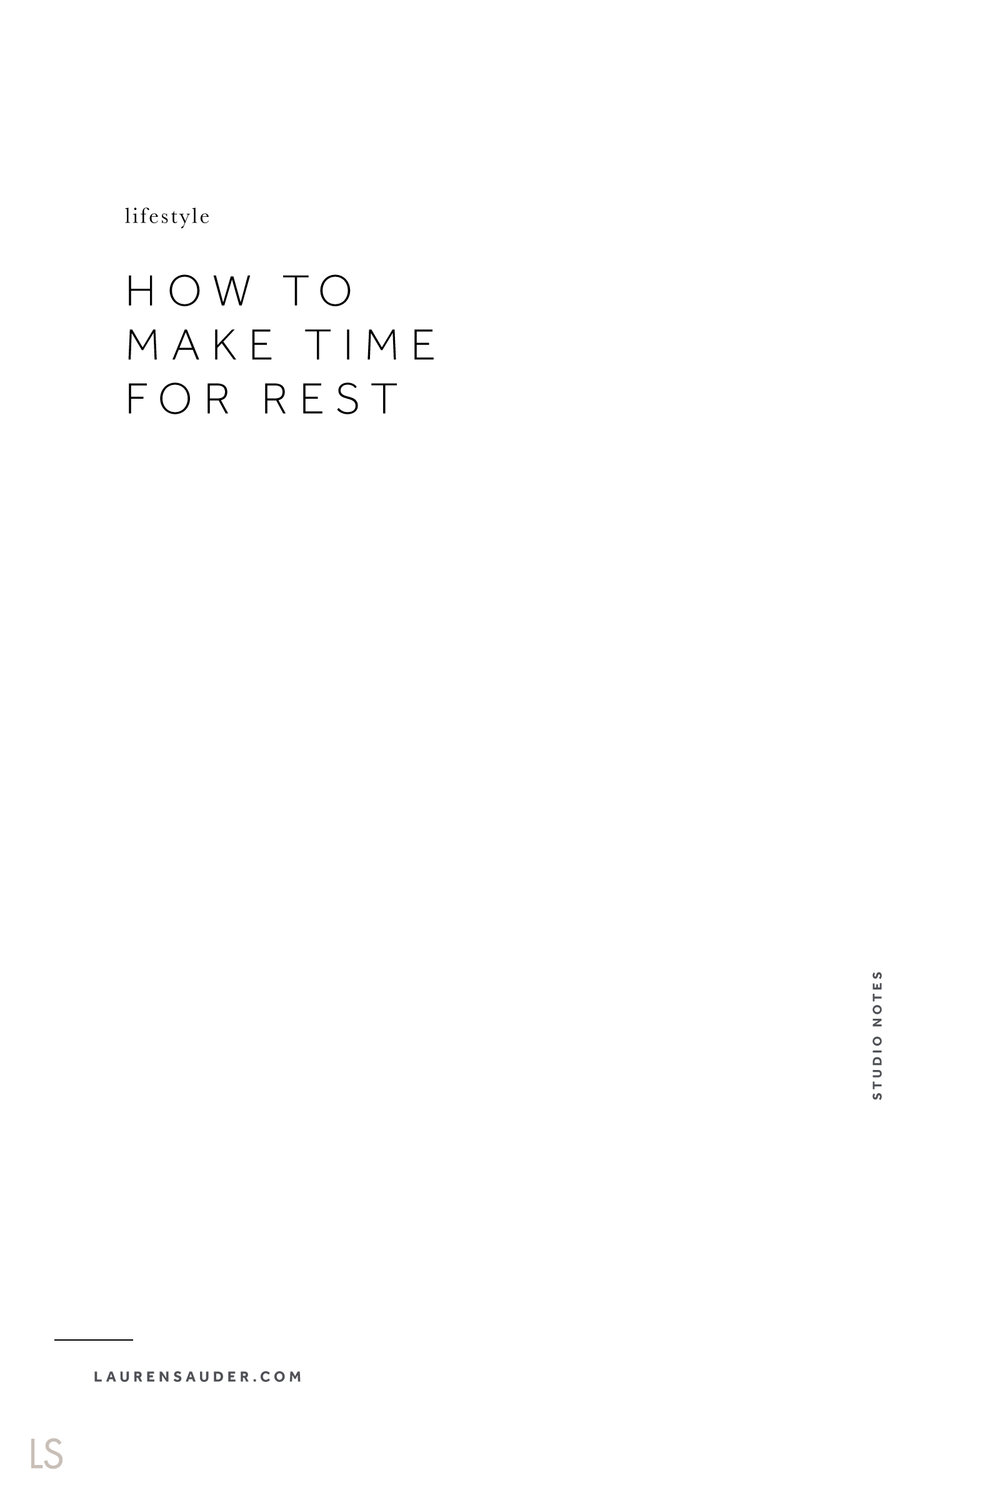 How to Make Time for Rest - Lauren Sauder #rest #relaxation #slowliving rest ideas, rest+relaxation practices, rest+relaxation habits, rest+relaxation meaning, relaxation important to your health